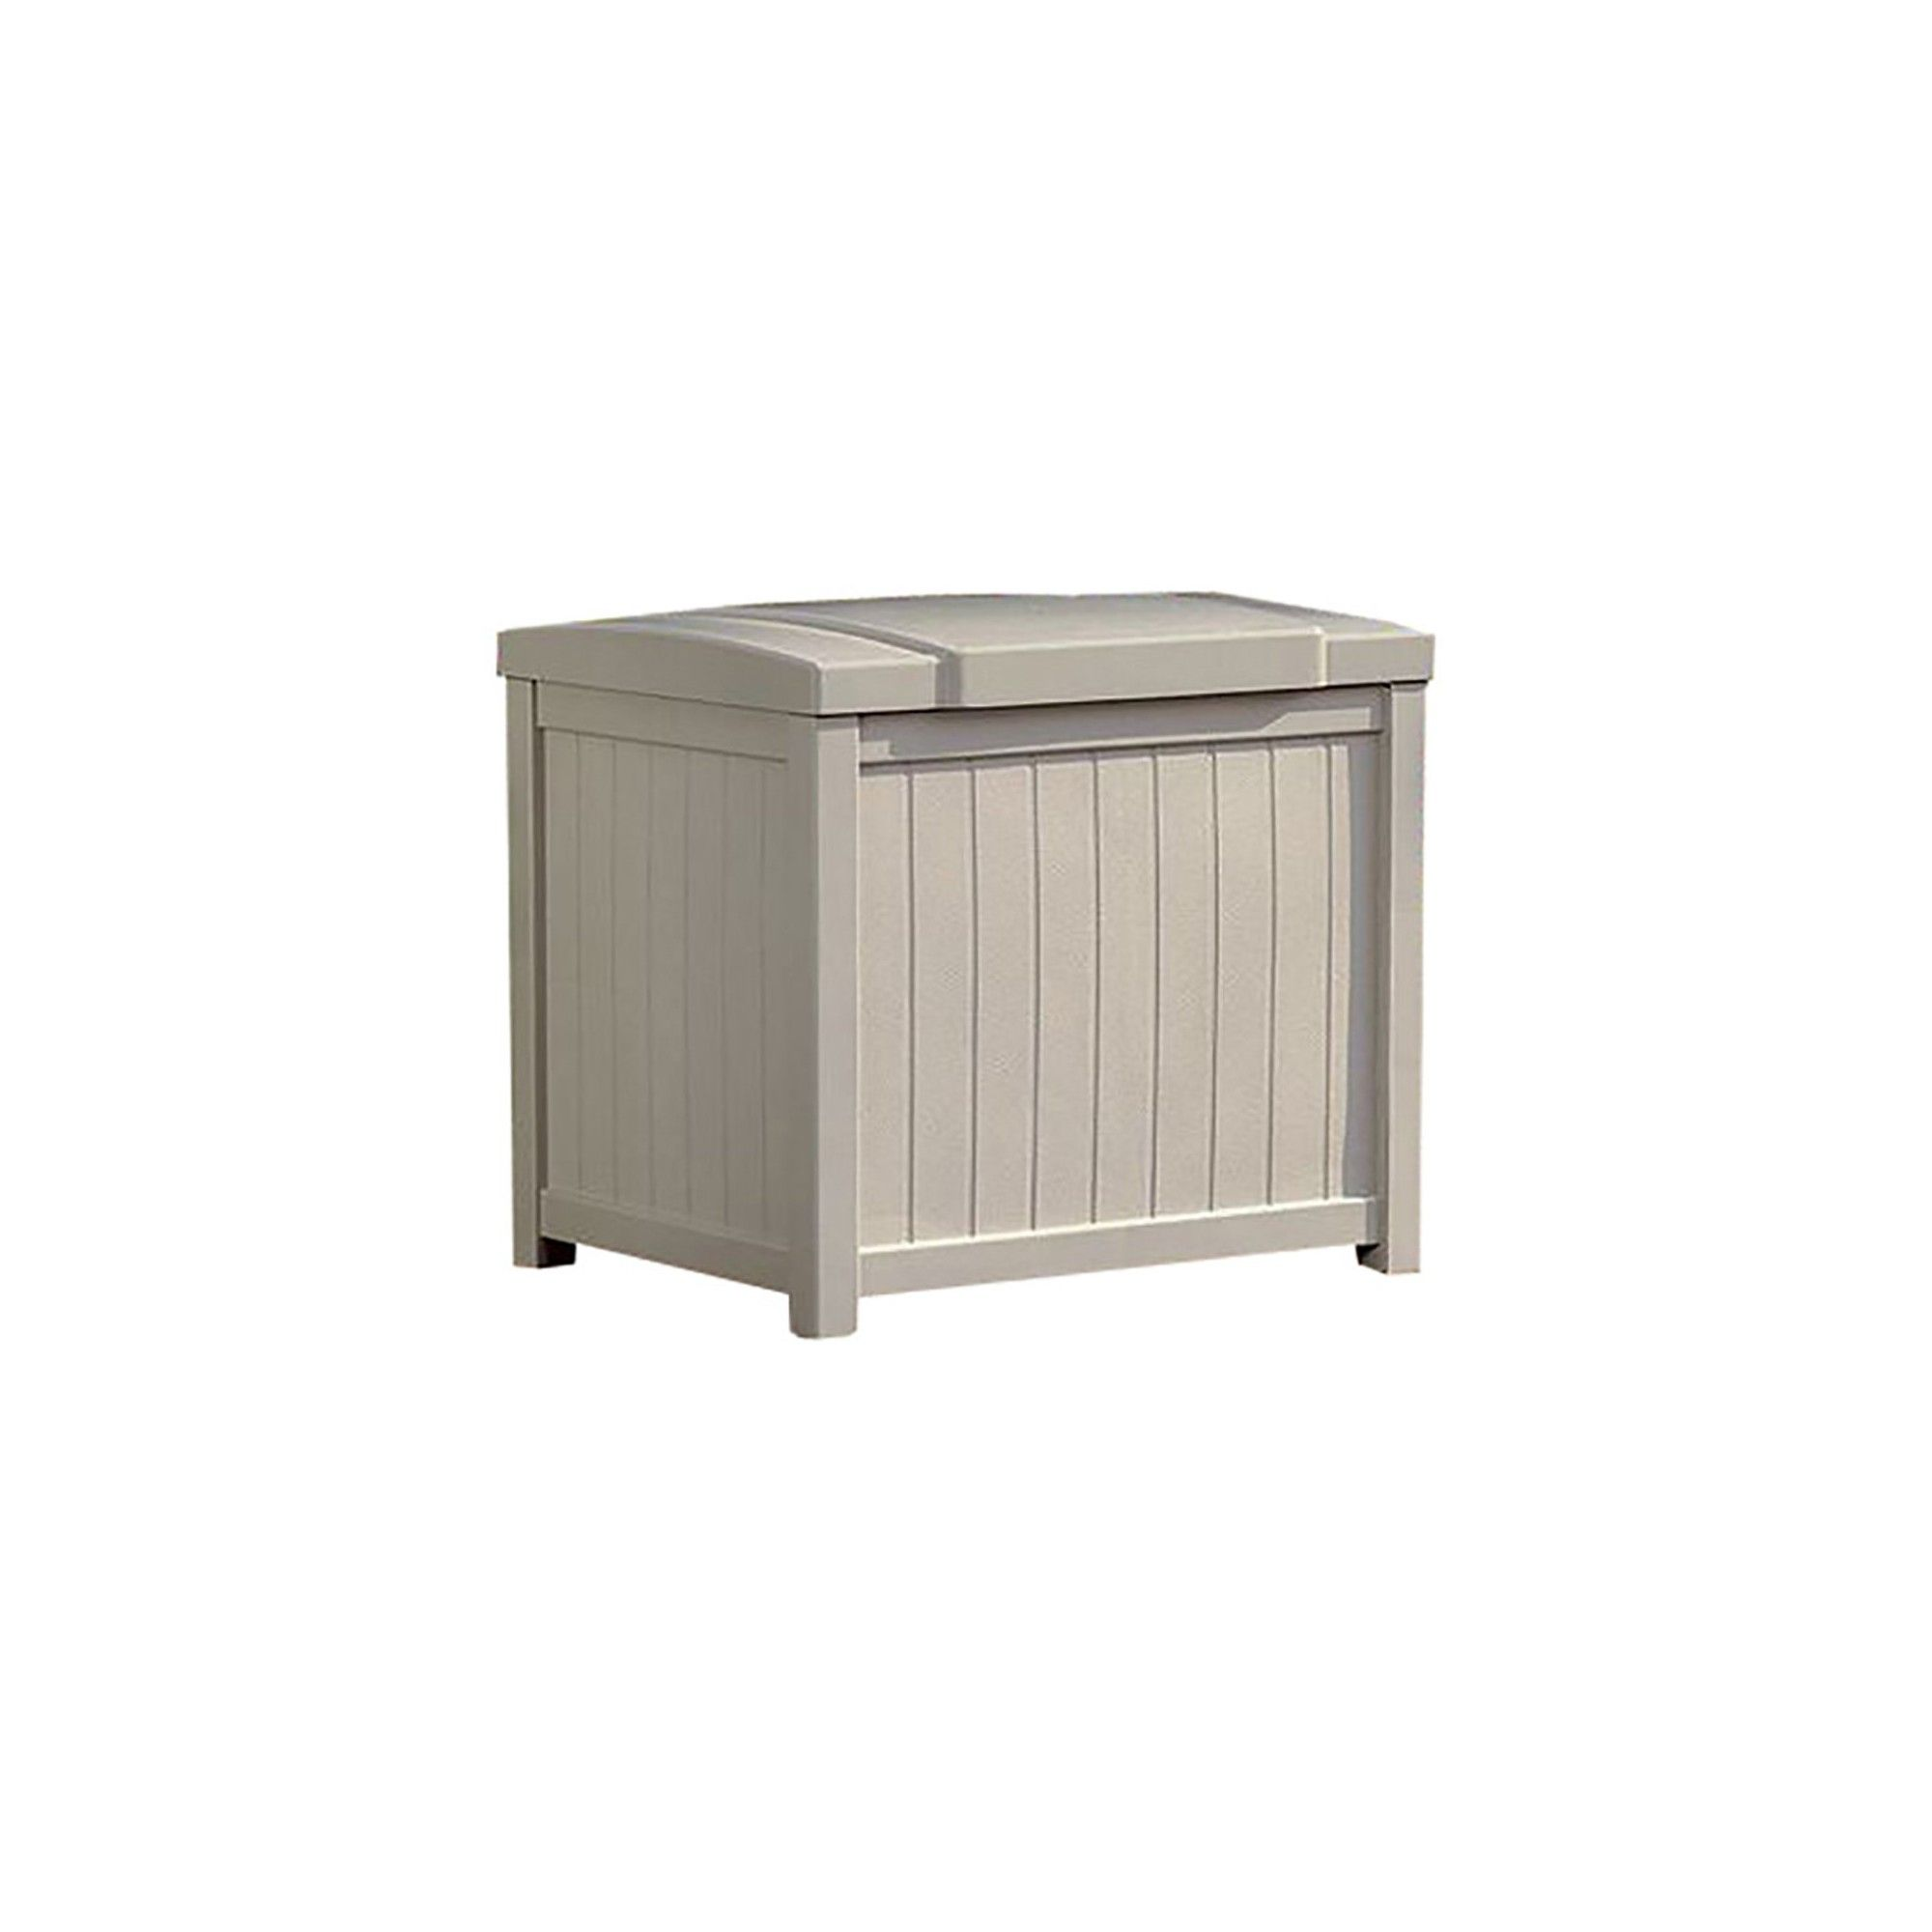 Suncast 22 Gallon Yard And Garden Stay Dry Resin Deck Box Light Taupe Ss900 Deck Box Deck Pool Supplies